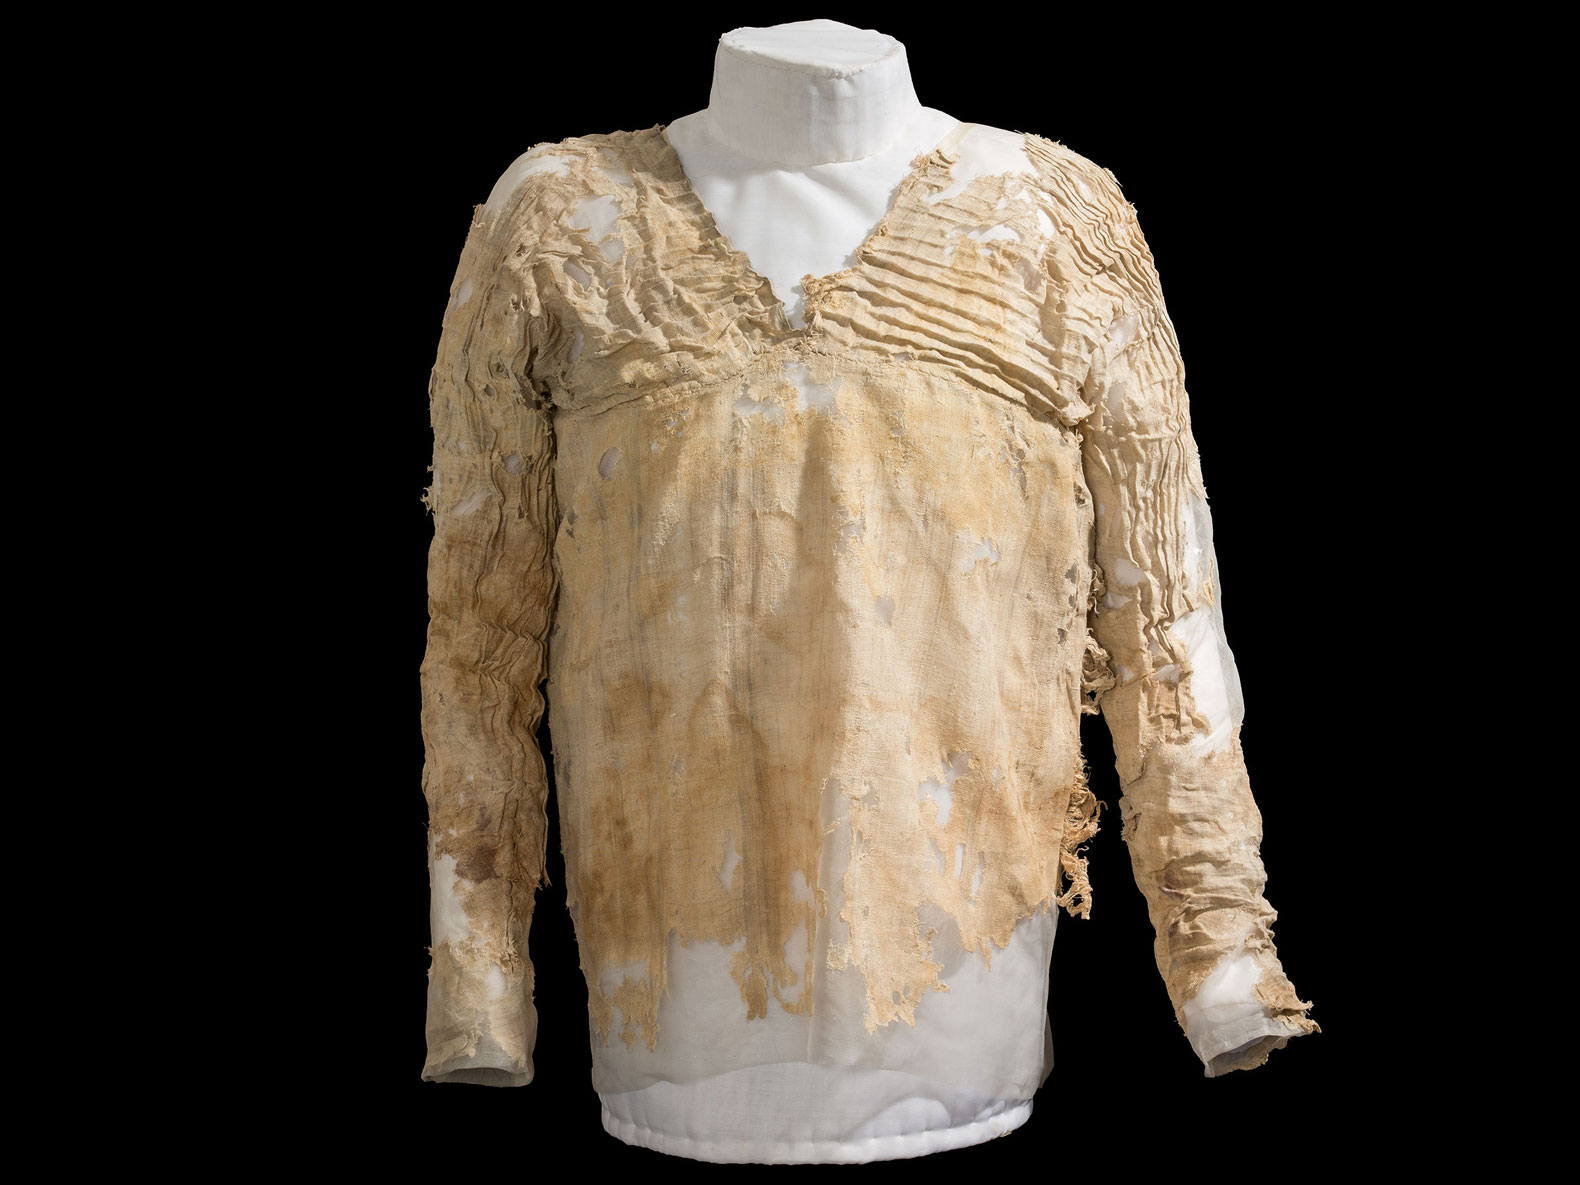 This is the World's Oldest-Known Garment Still in Existence